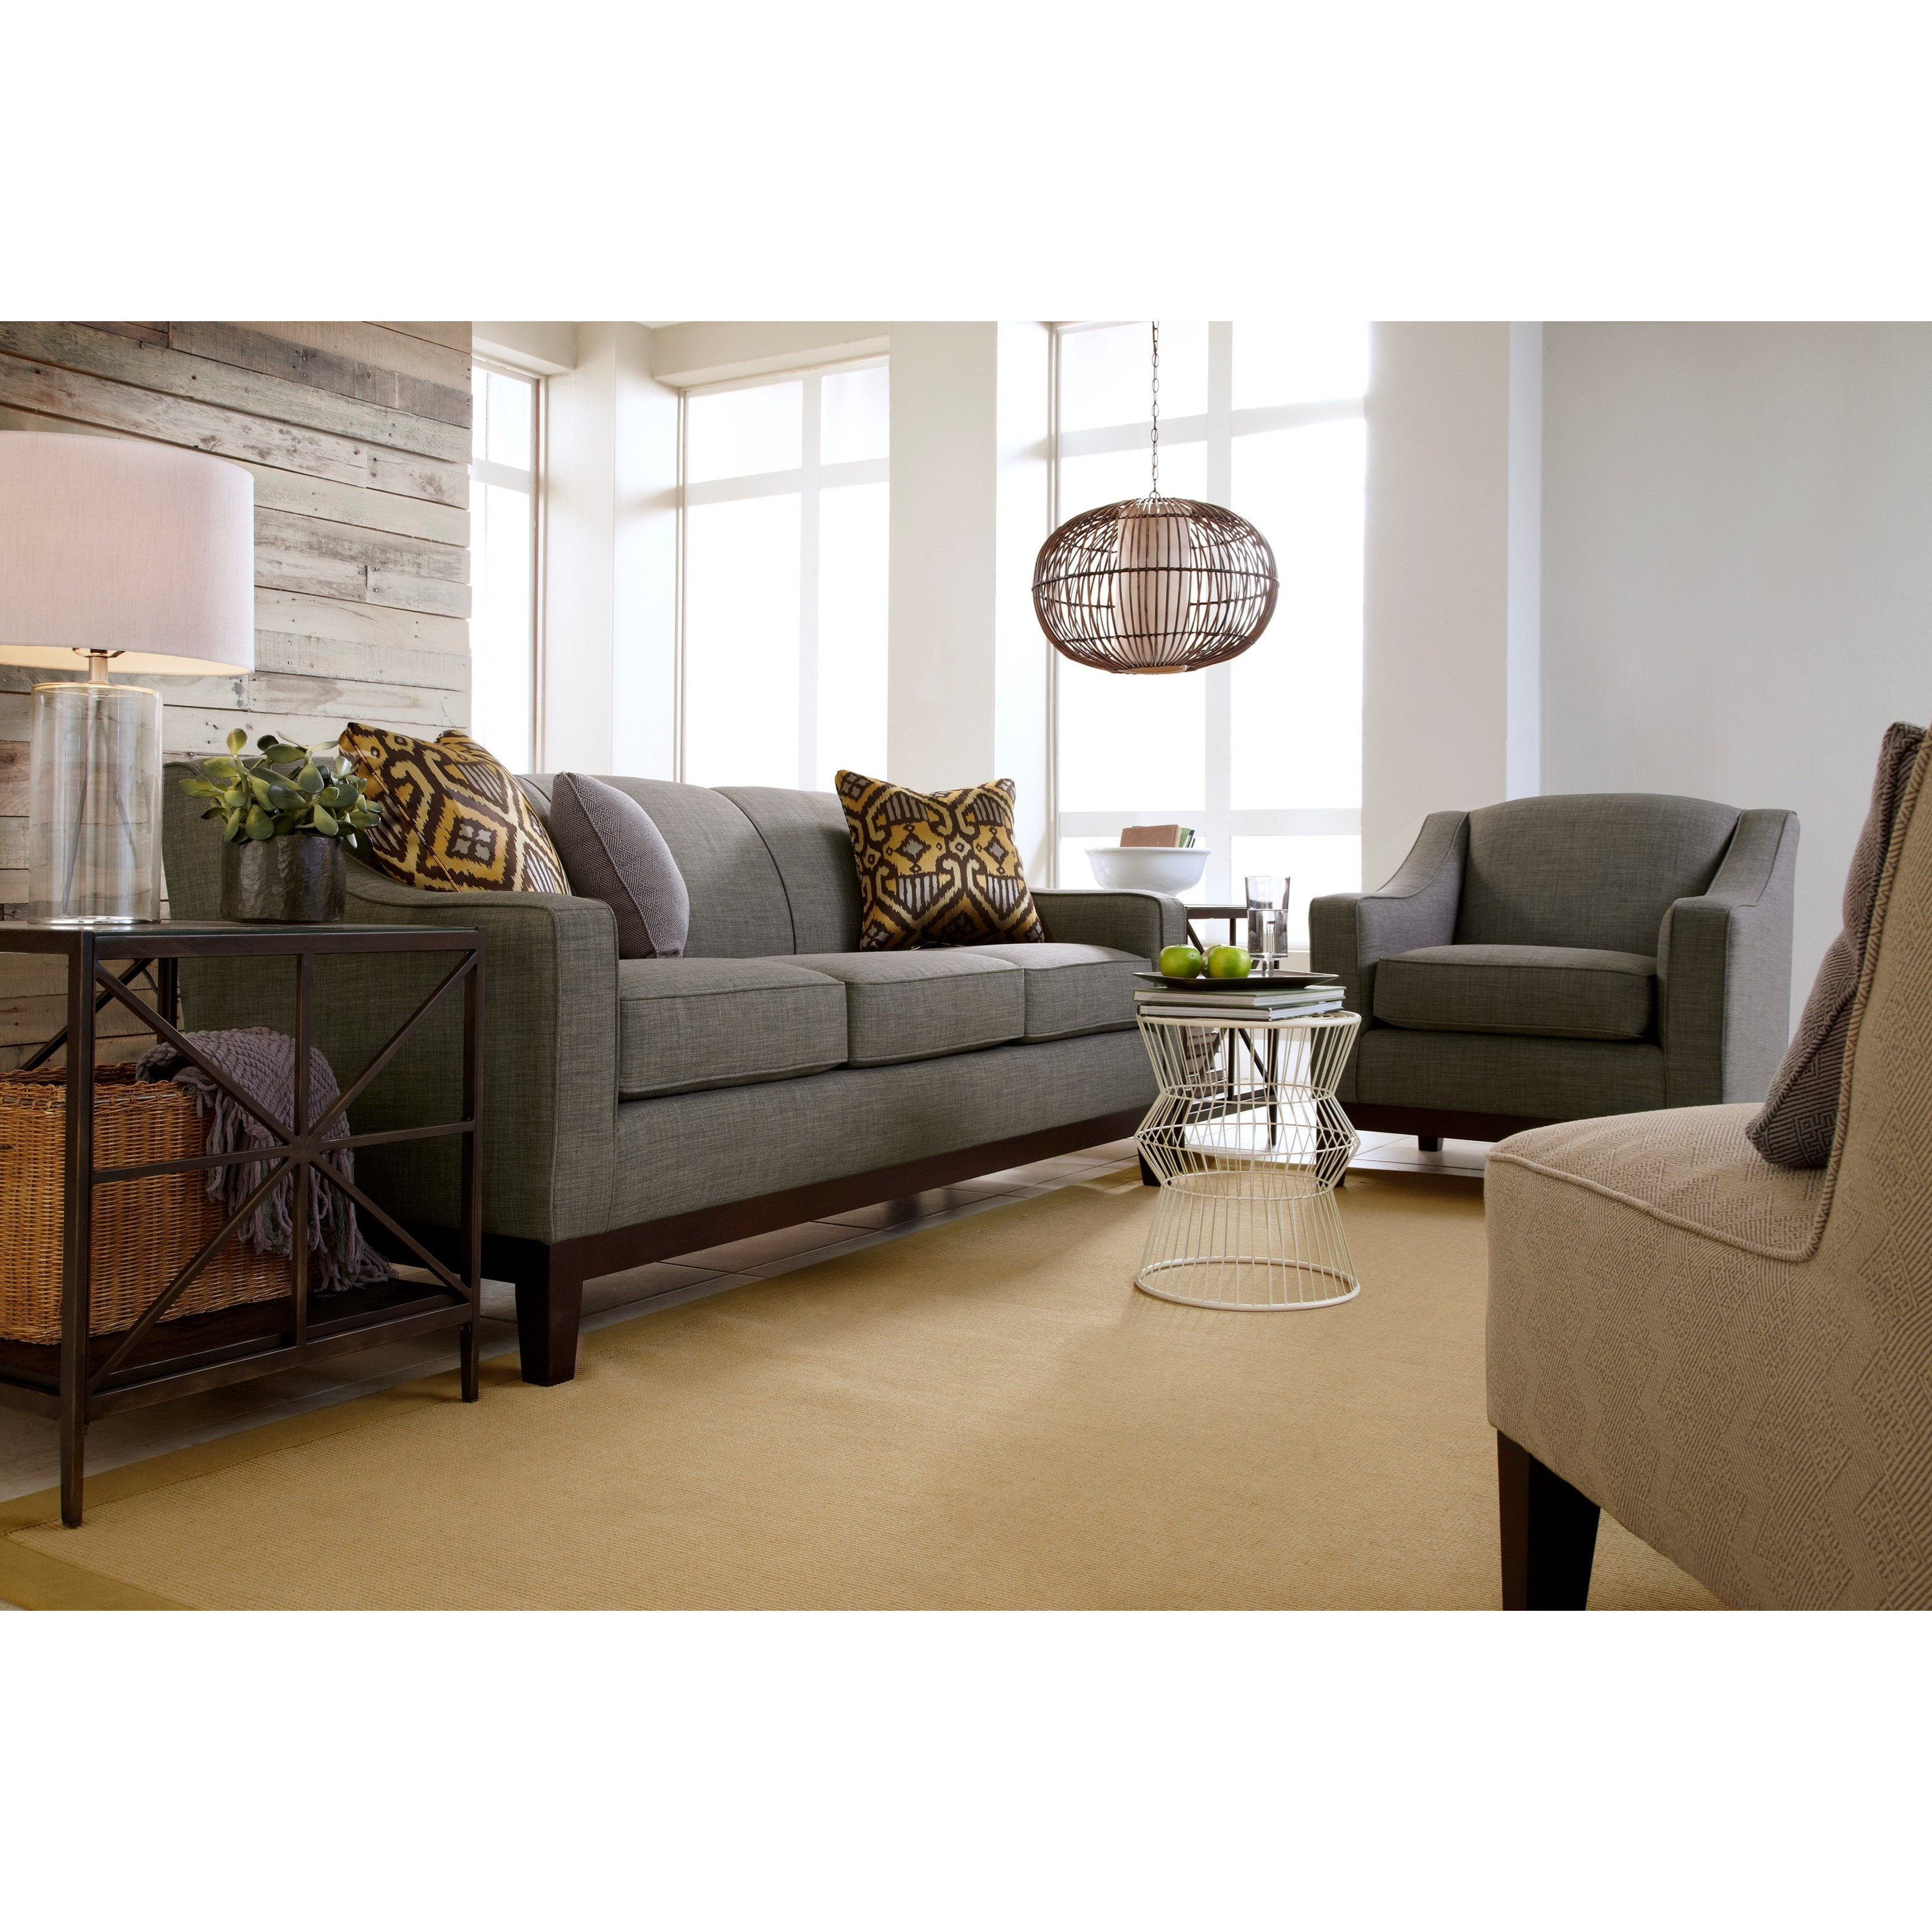 Best Home Furnishings Emeline Customizable 84 Sofa With Track Arm And Wood Legs Fashion